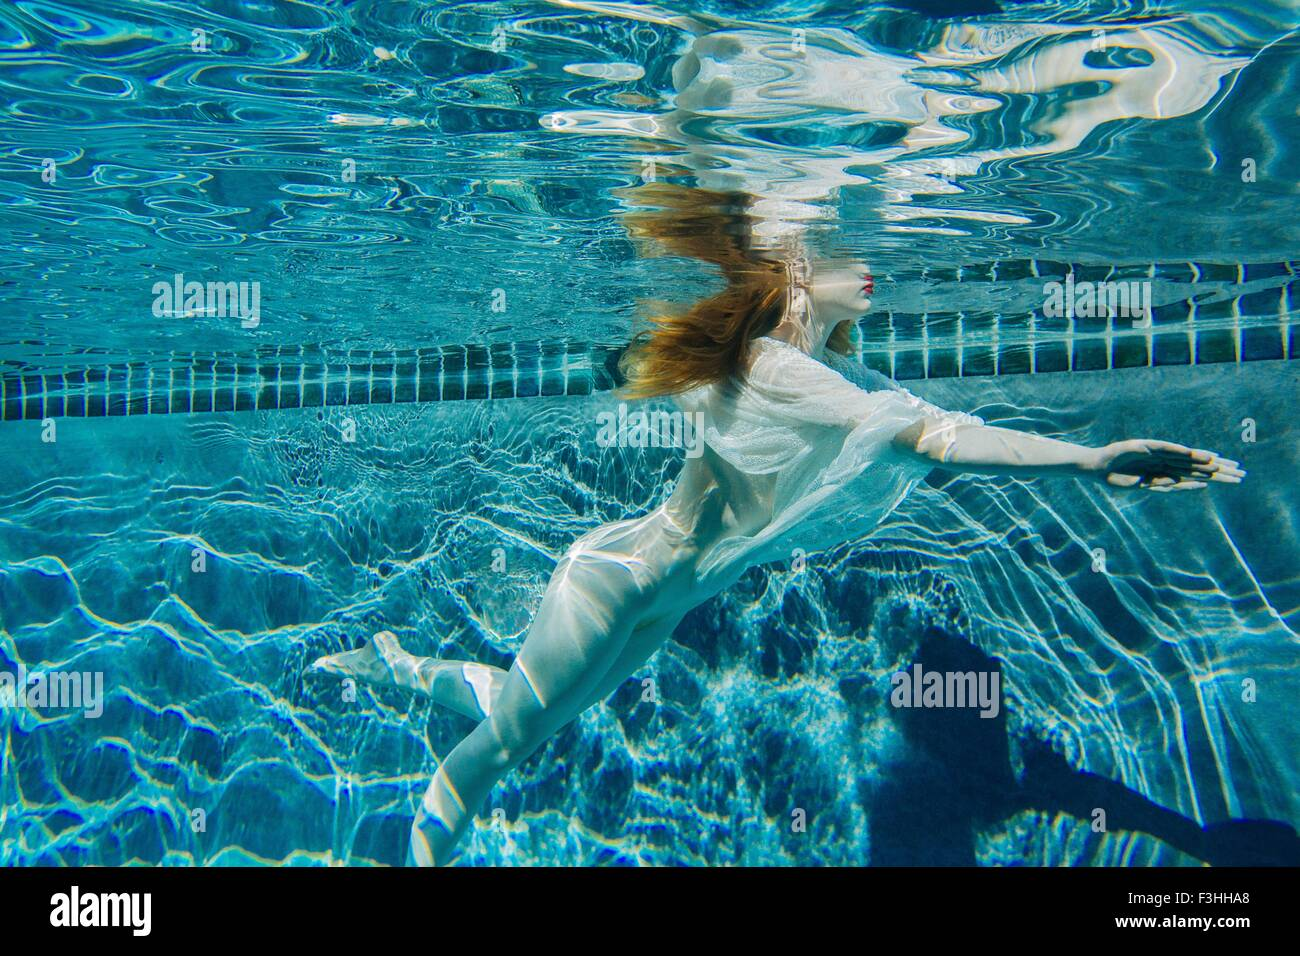 Young Woman Underwater Wearing Thin White Shirt And Pearls